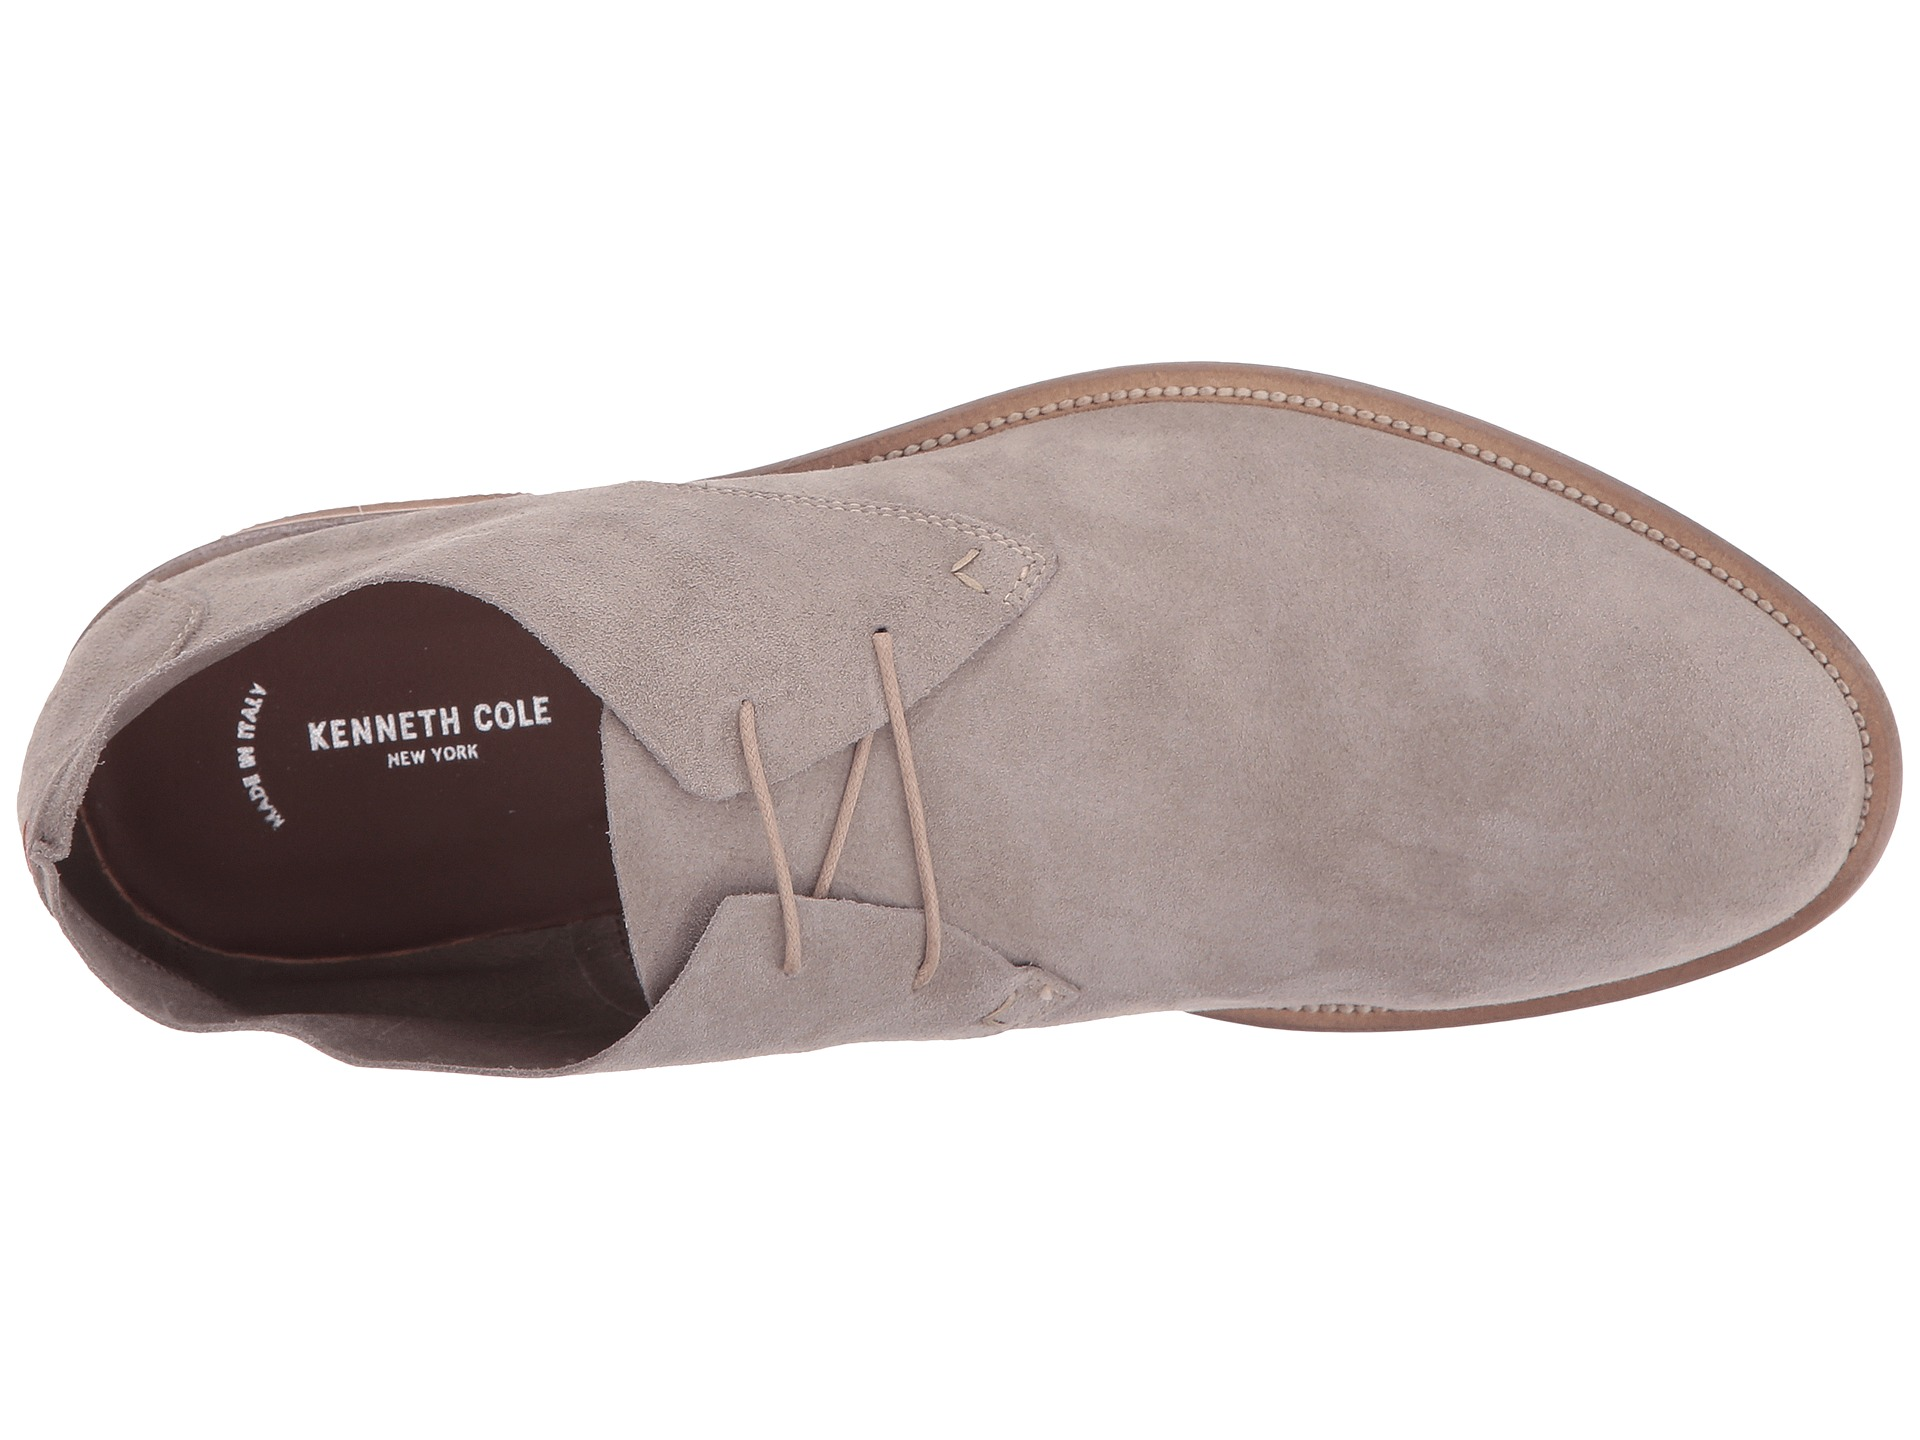 Kenneth Cole New York Take Comfort Taupe